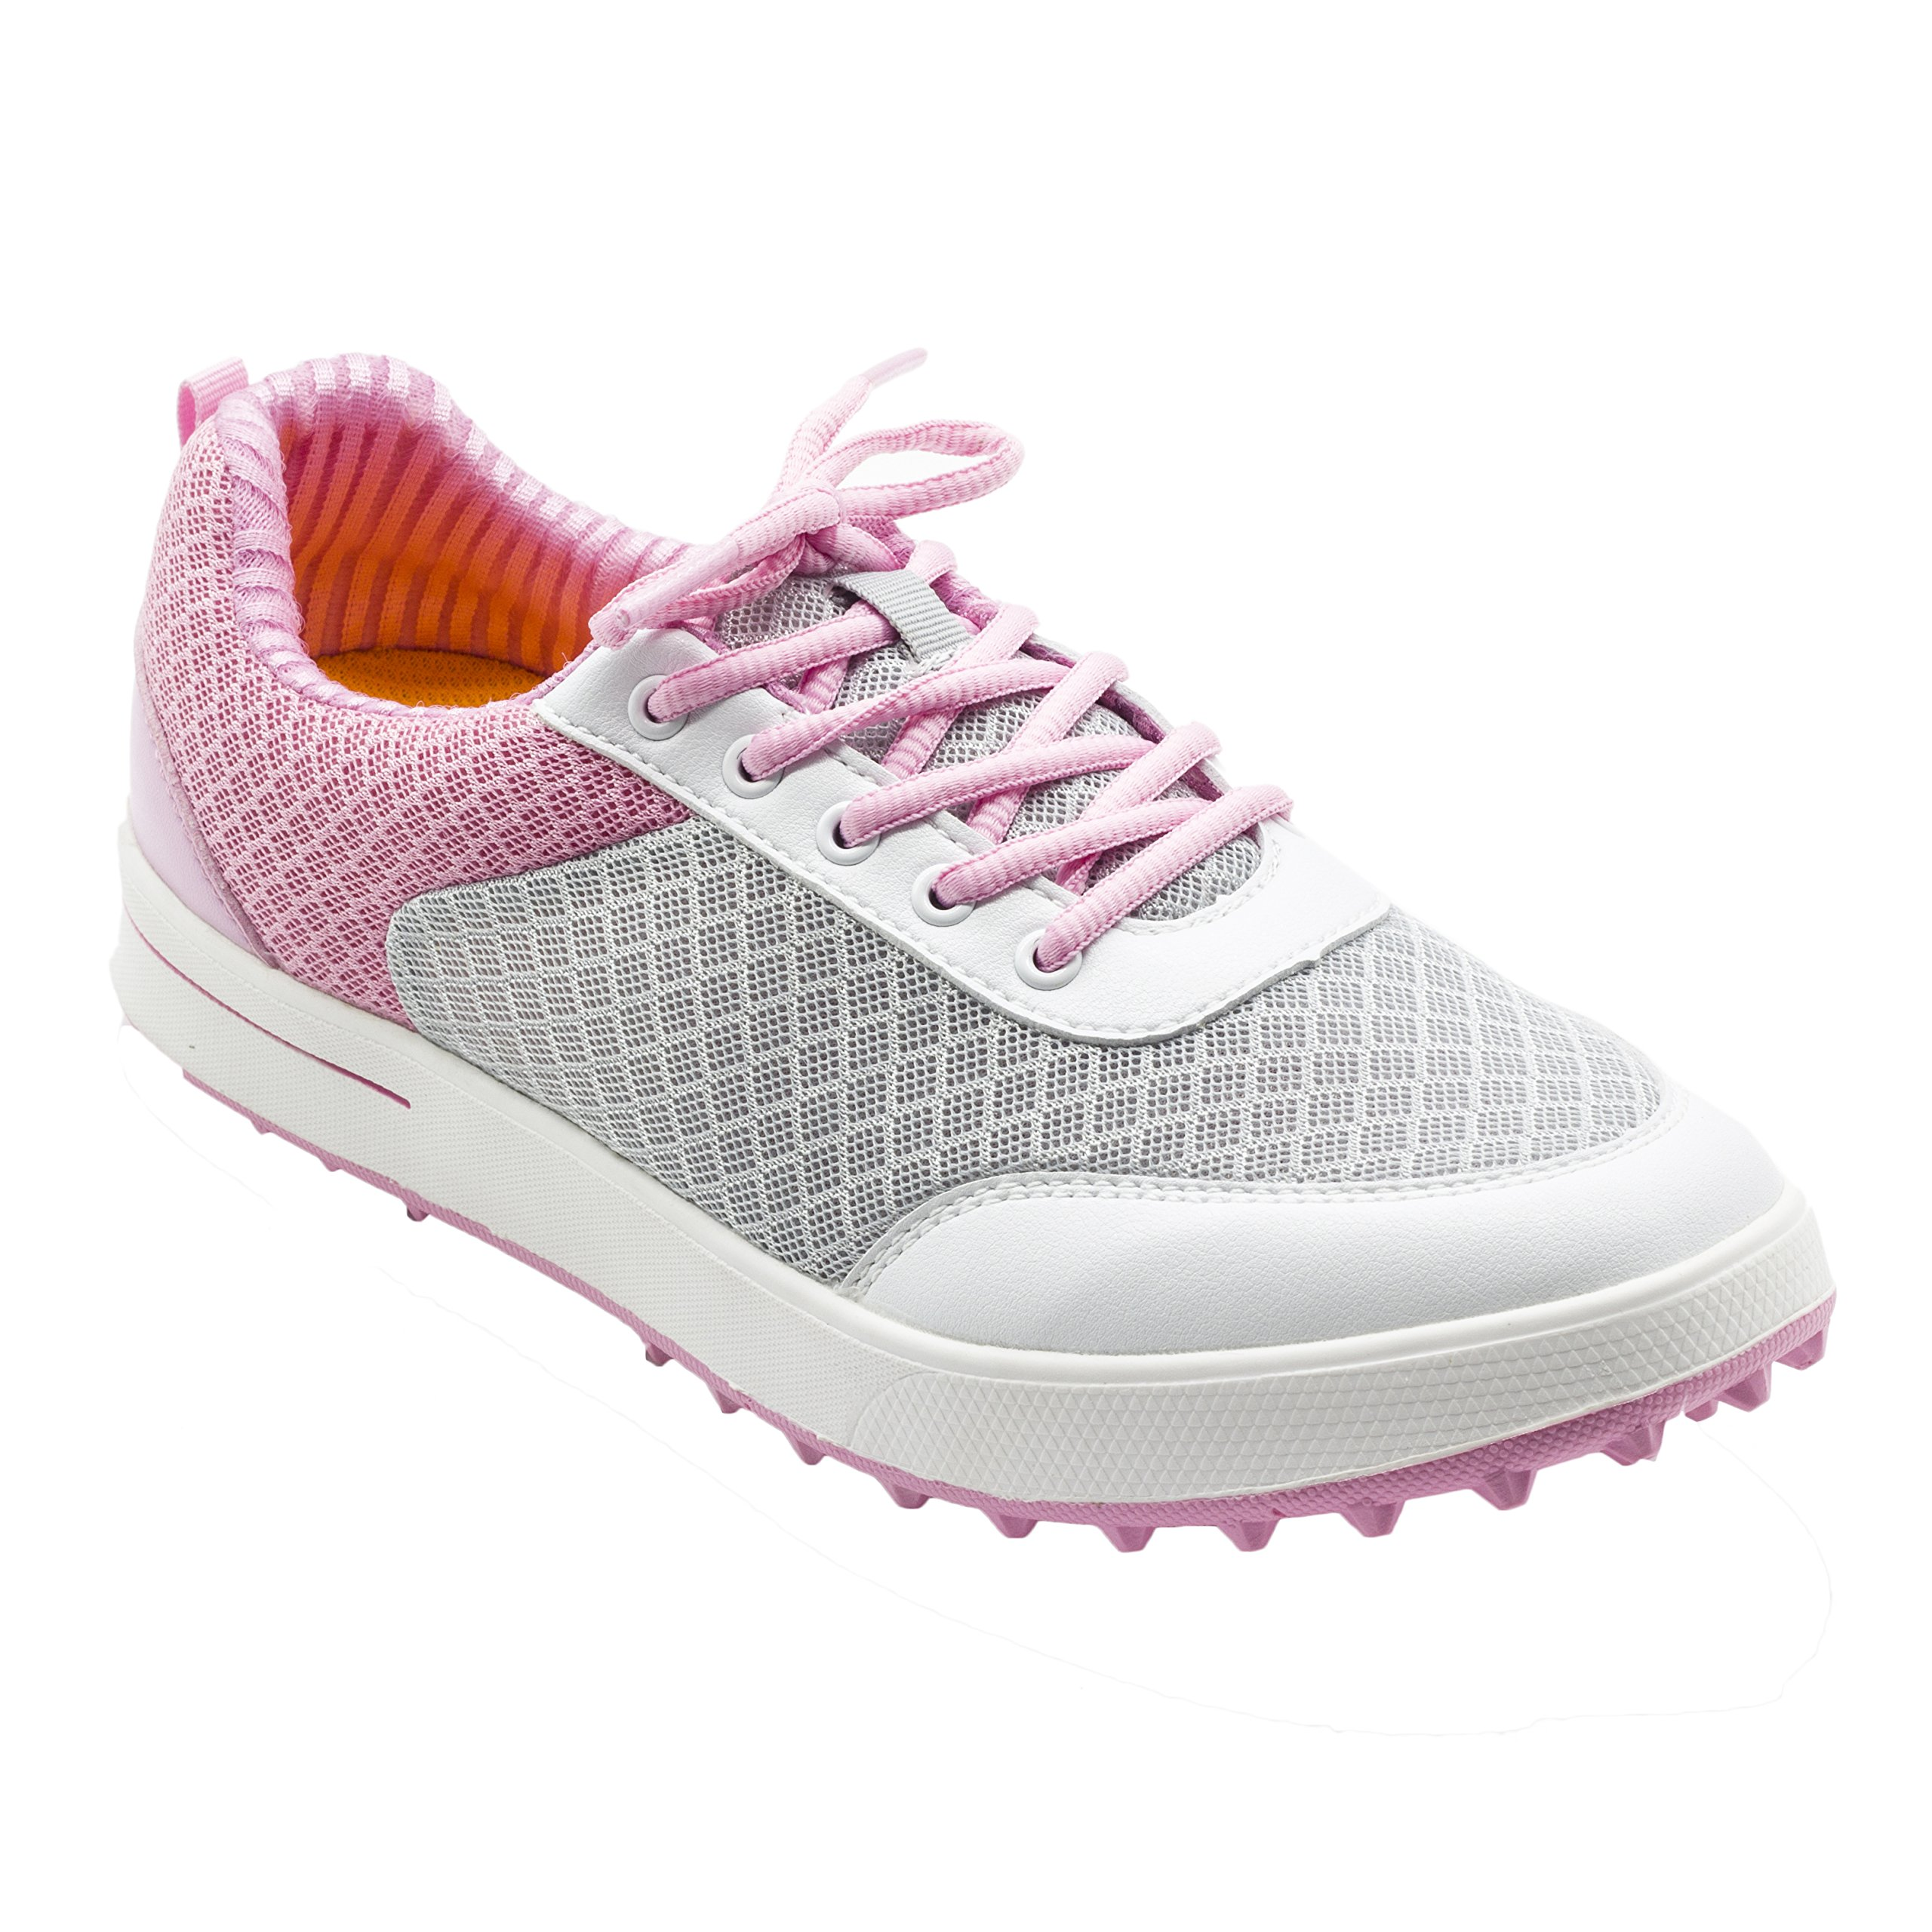 PGM Breathable Summer Golf Shoes for Women Size 7 US, 38EU, Medium to Large, XZ081 Pink